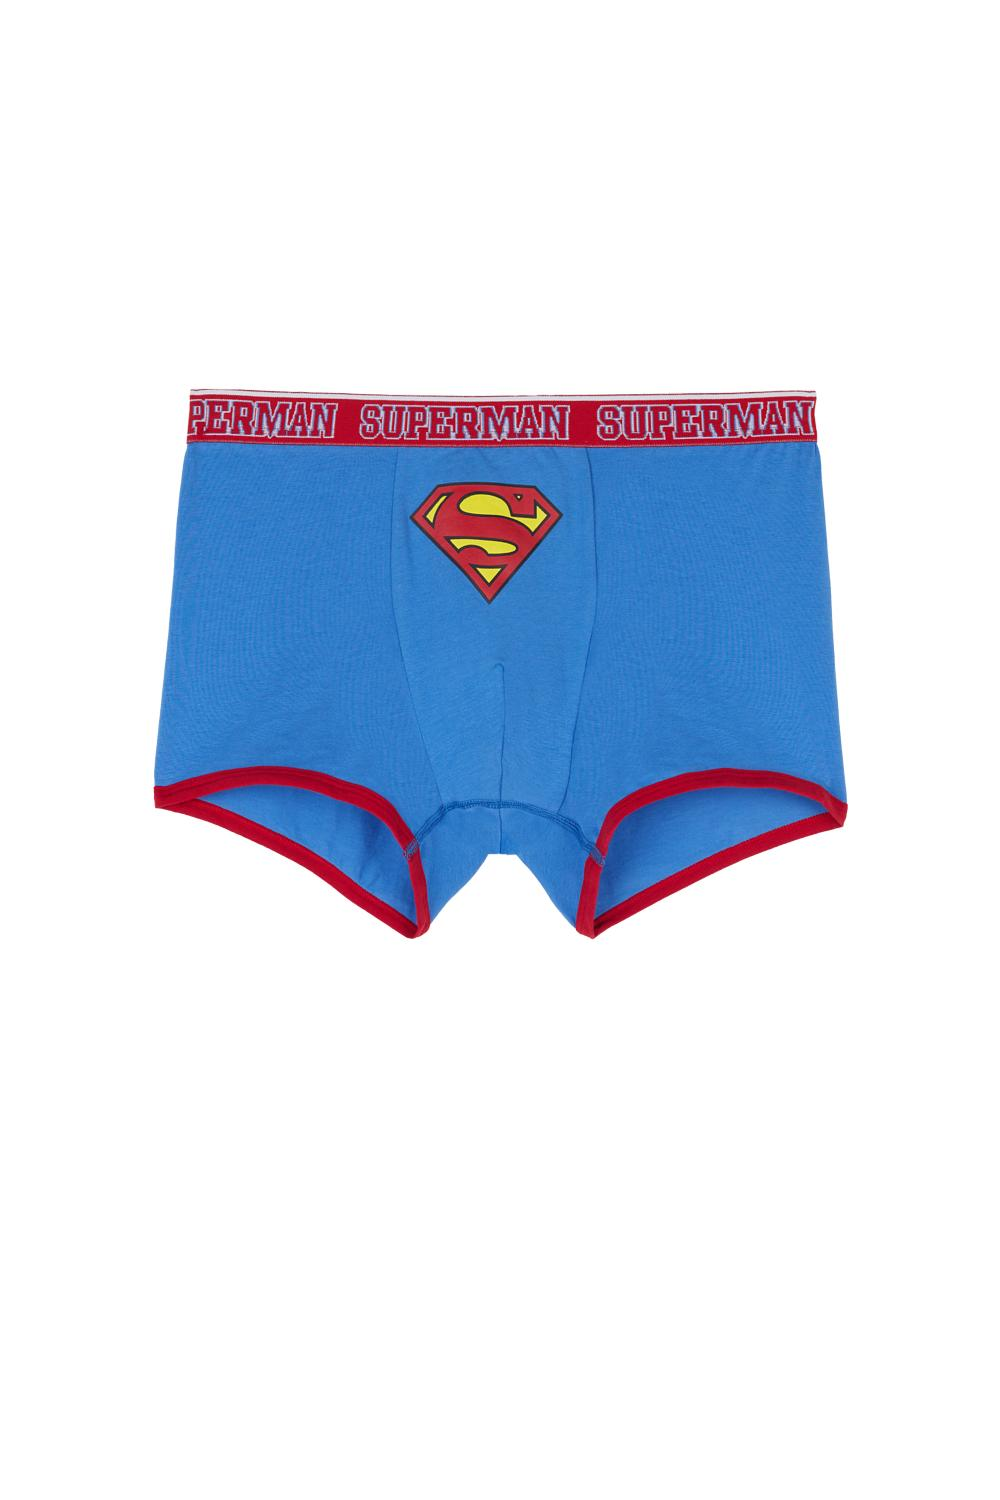 Superman Cotton Boxer Briefs